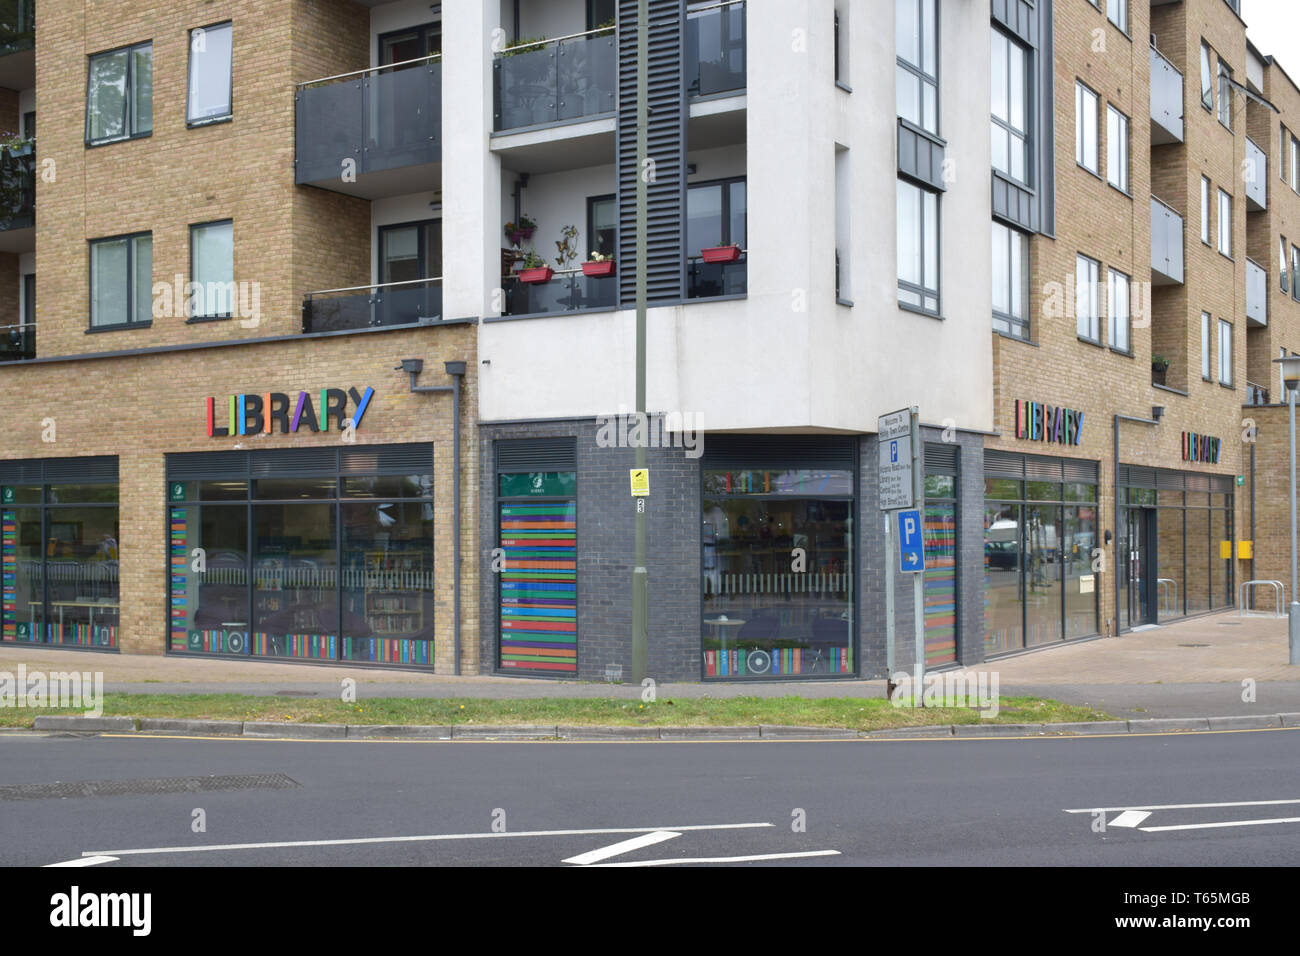 New Library, Horley, Surrey (2 of 4) - Stock Image